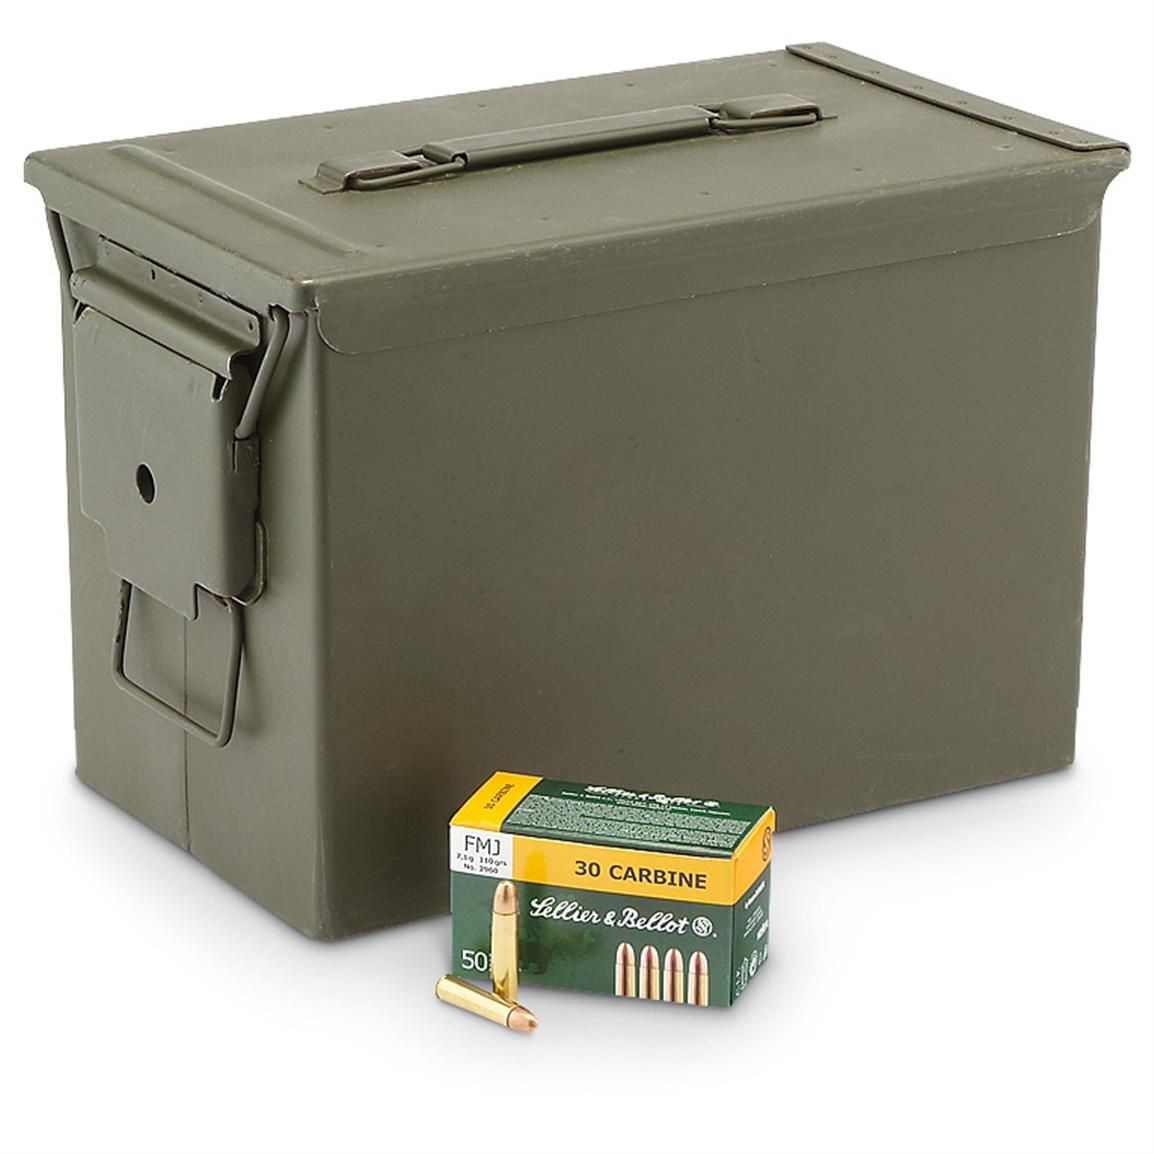 .30 Carbine Ammo with Can, FMJ, 110 Grain, 600 Rounds